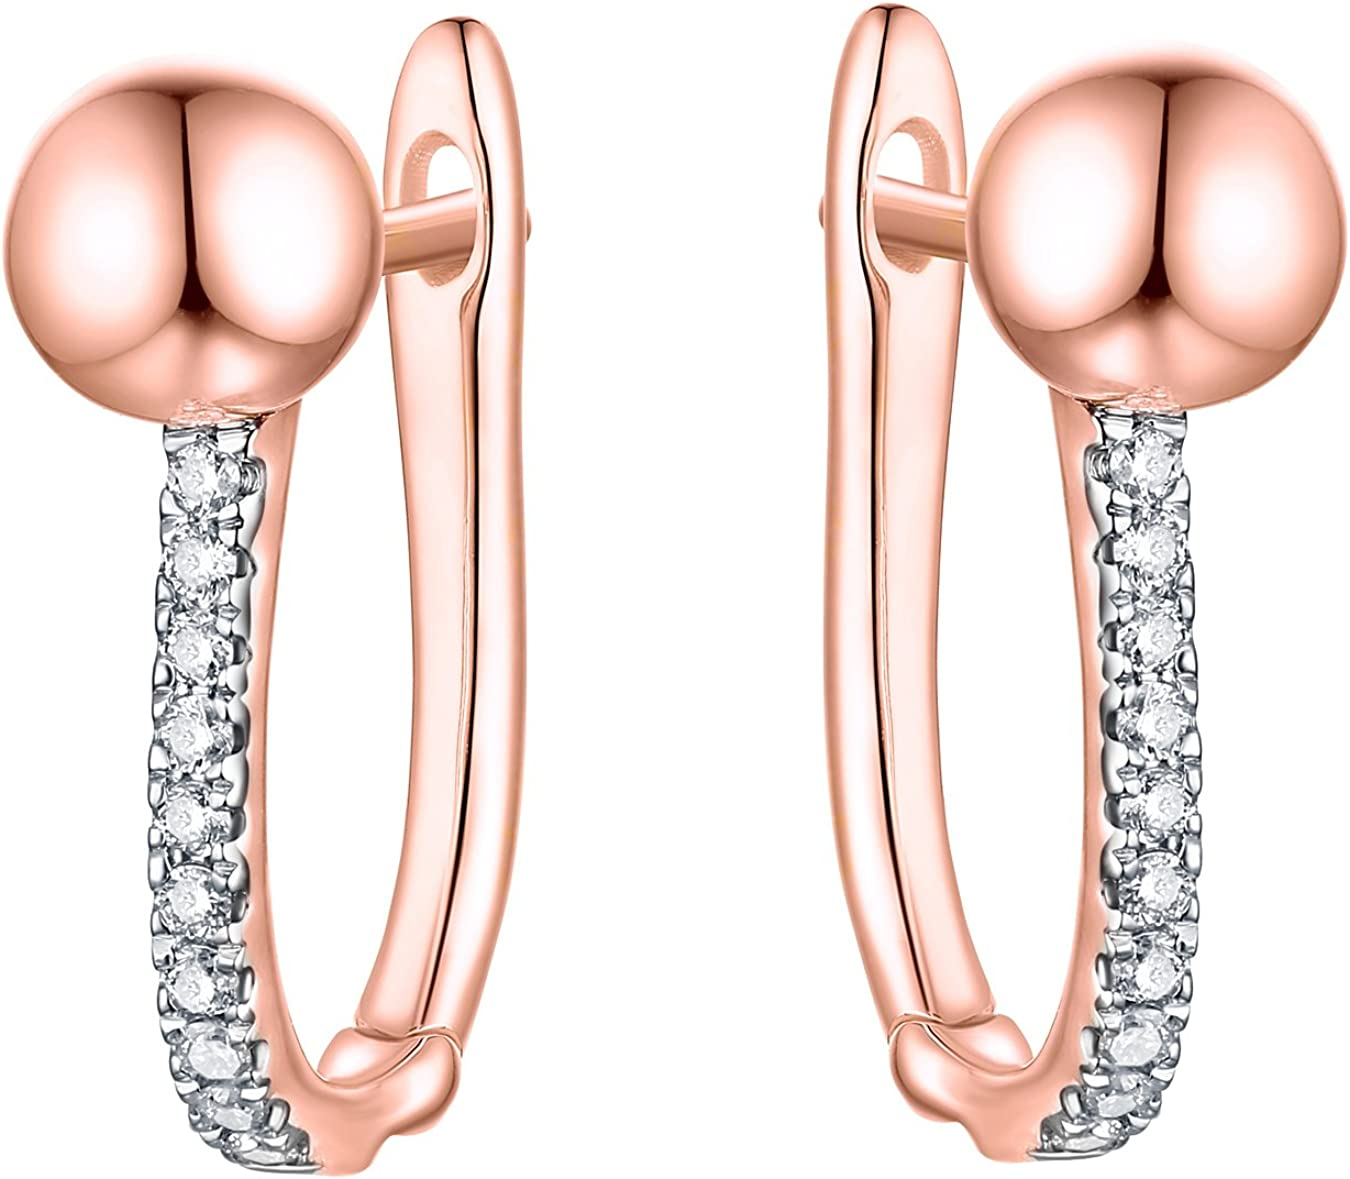 Prism Jewel 0.08Ct Natural G-H/I1 Diamond Hinge With Notched Post Ball Earrings Crafted In Solid Gold